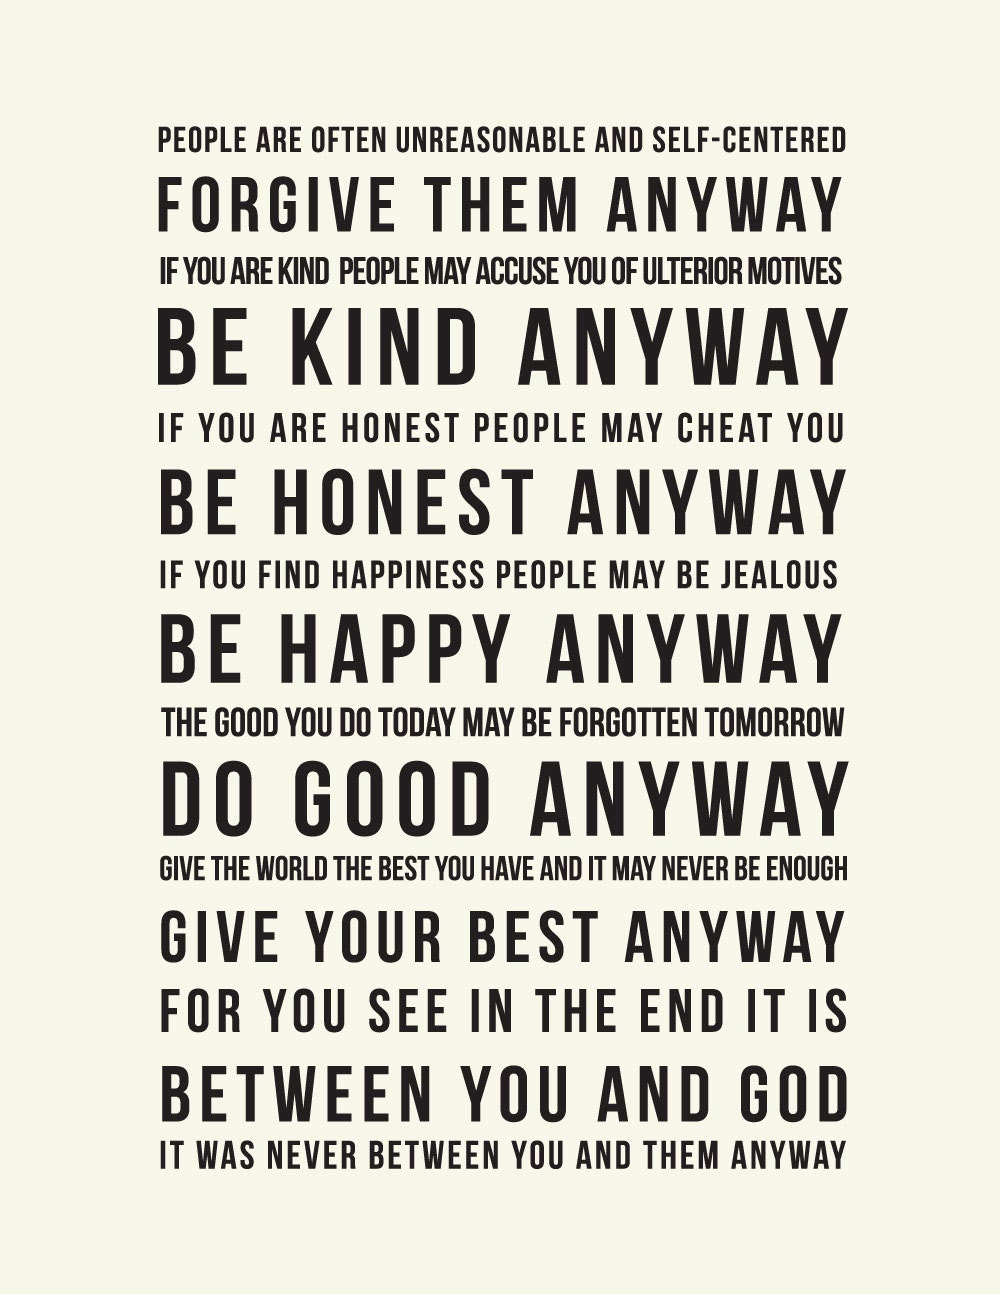 Mother Teresa Quotes Love Them Anyway Mother Teresa Quotes Do It Anyway Framed  More Information